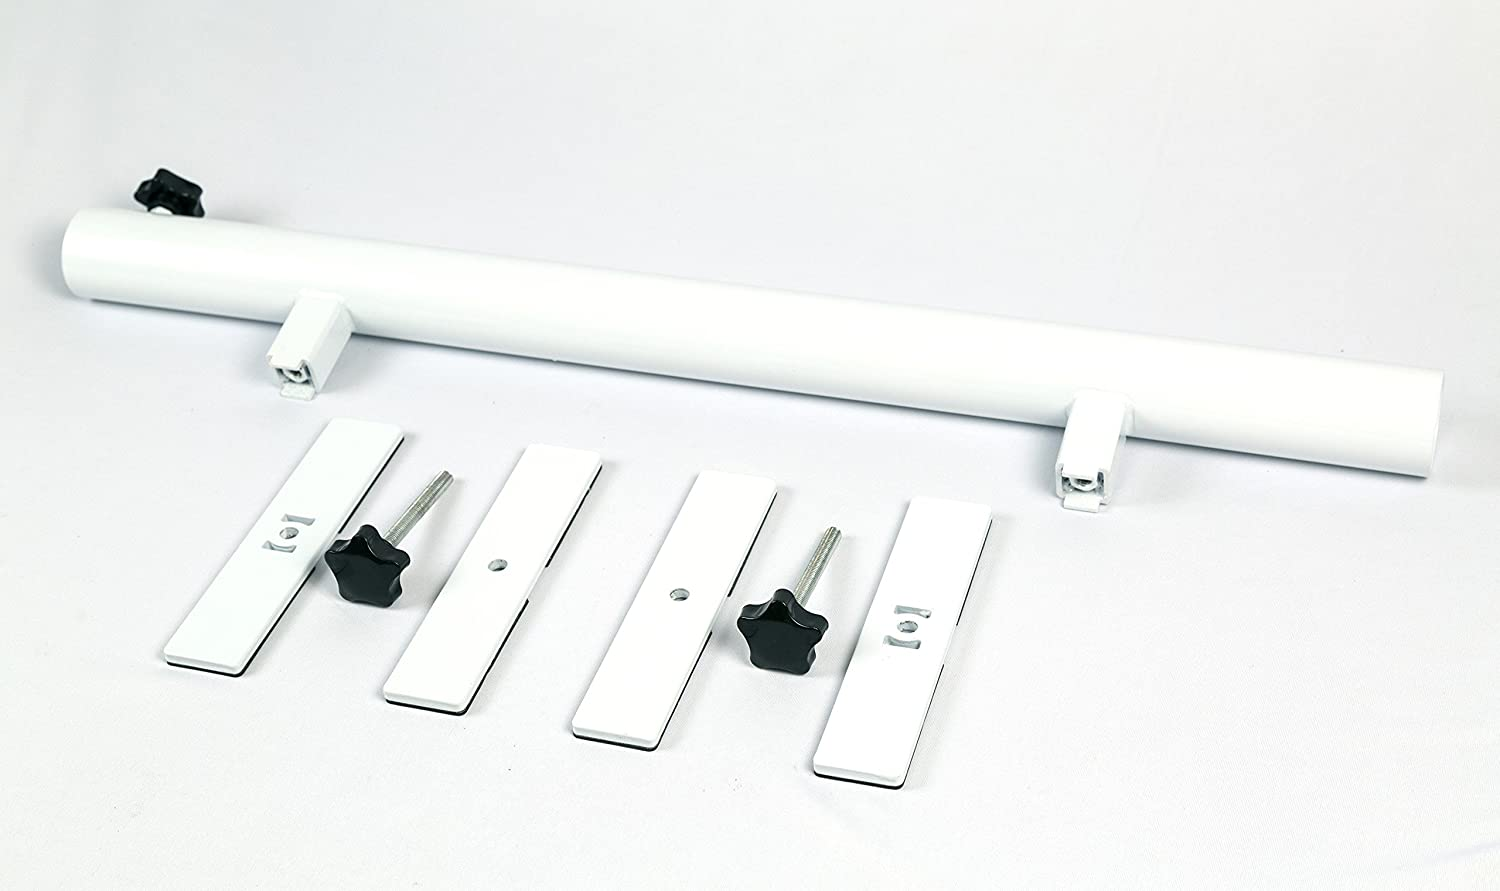 Patio Umbrella Holder Outdoor Umbrella Base and Mount Attaches to Railing Maximizing Patio Space and Shade White